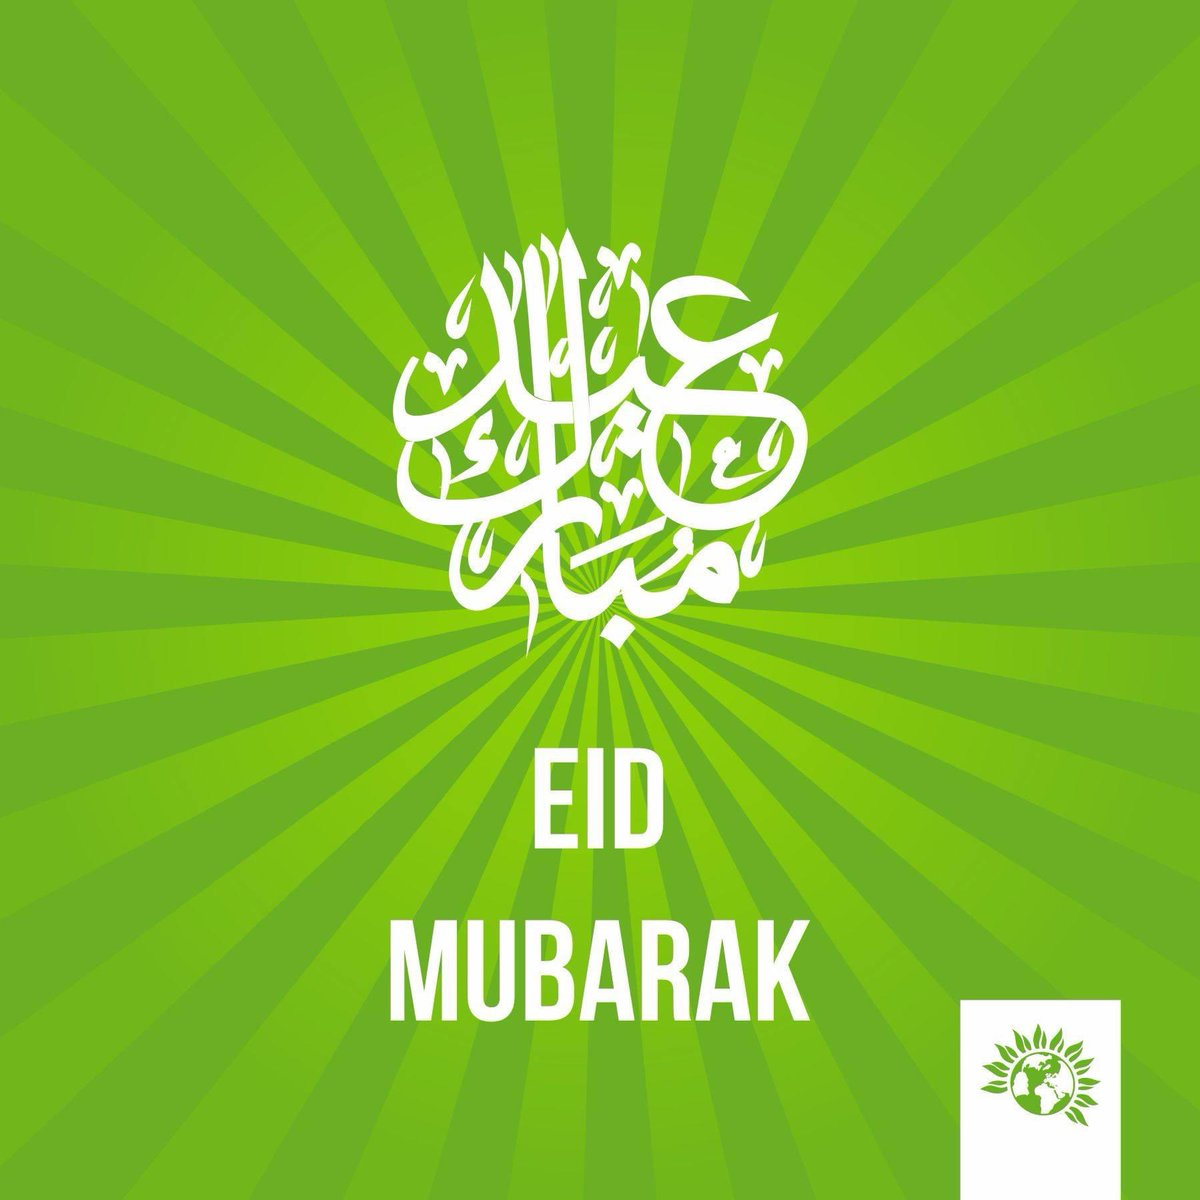 Eid Mubarak to everyone celebrating today 💚 Solidarity to those of us who can't come together with loved ones. Today's message of charity and community is a great message to get us through this time.